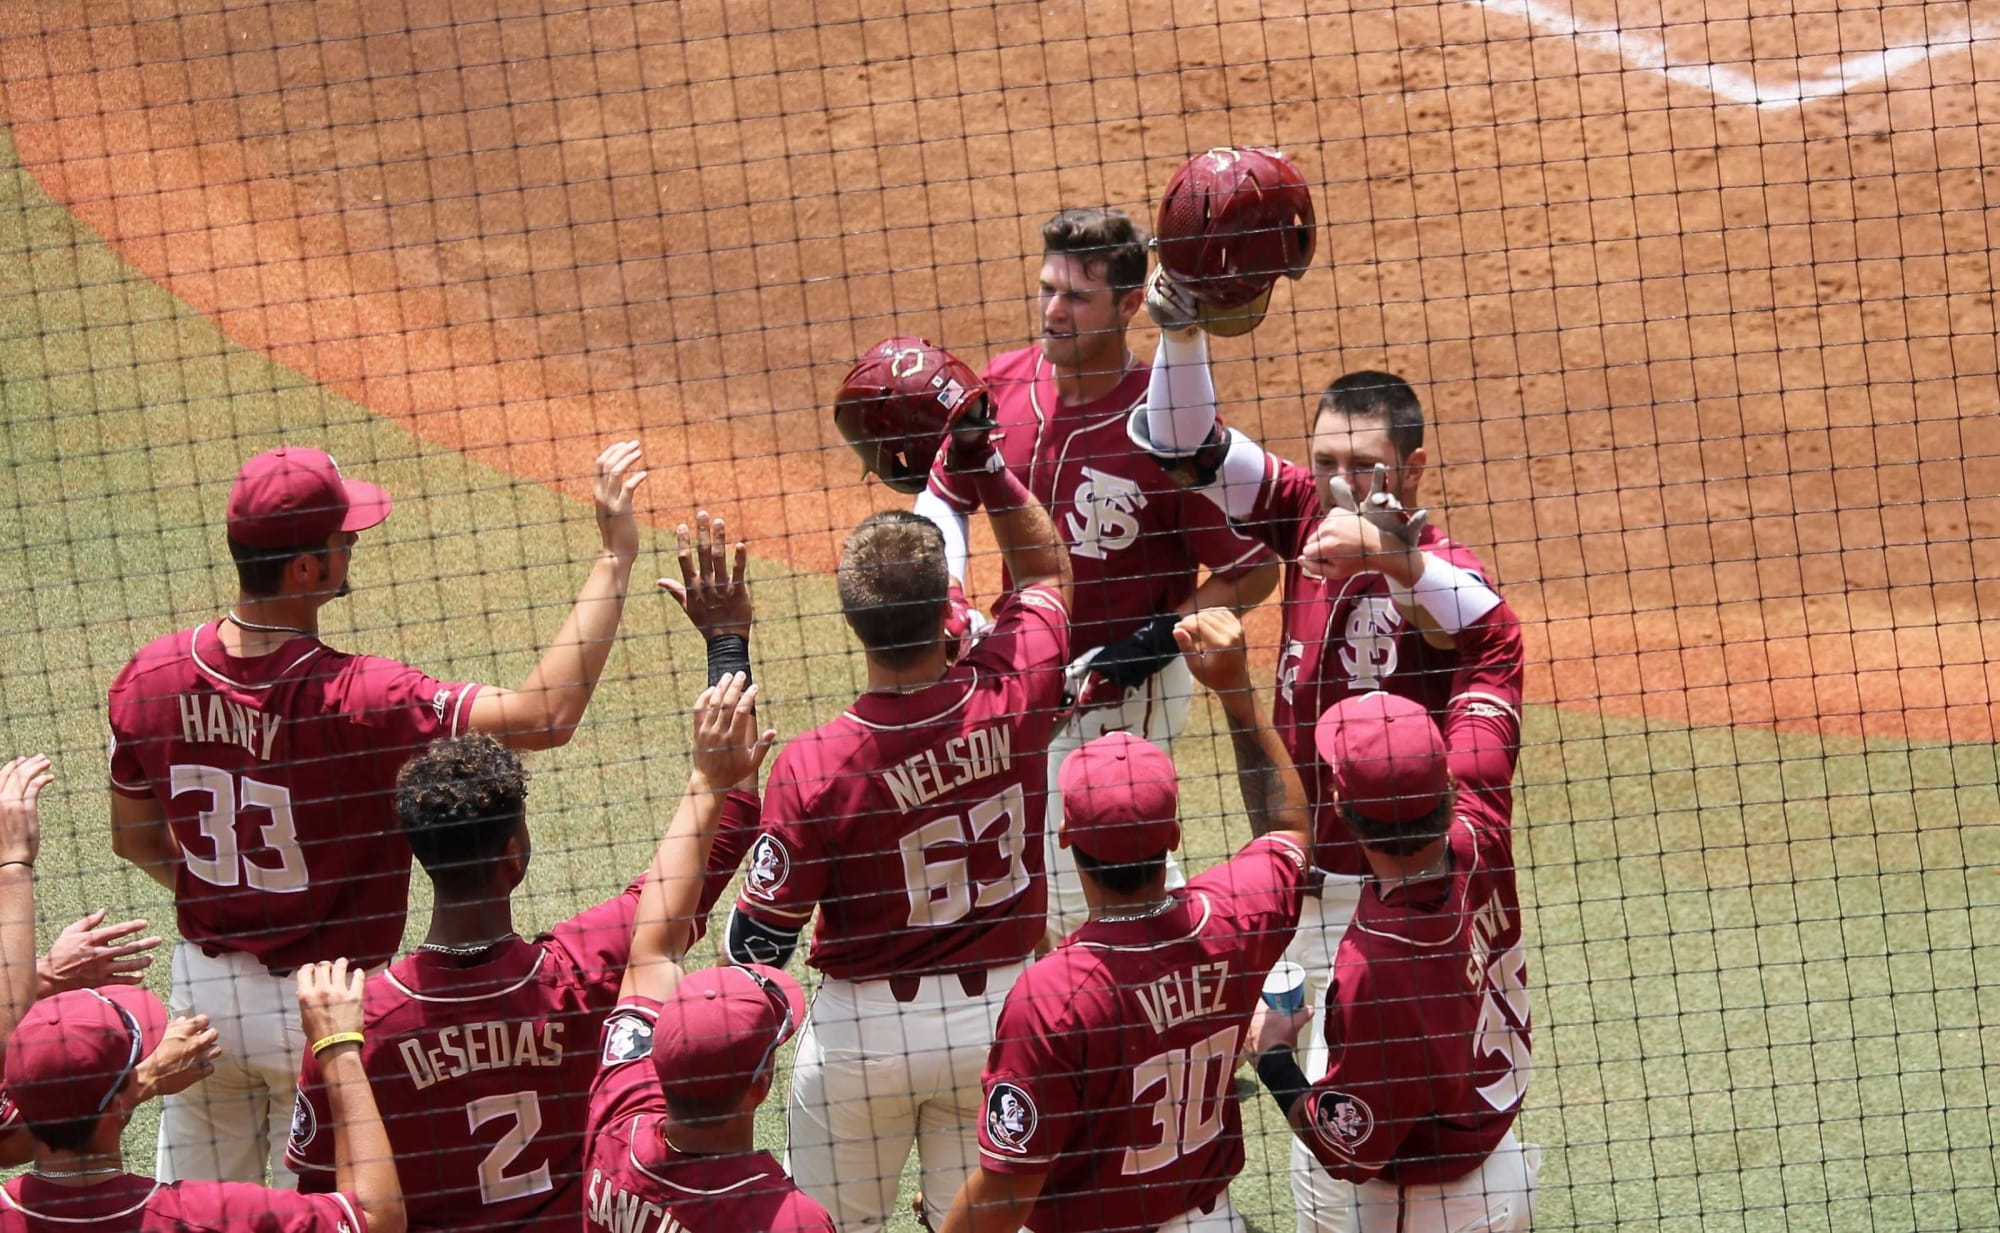 FSU baseball: Noles look for the sweep against Boston College